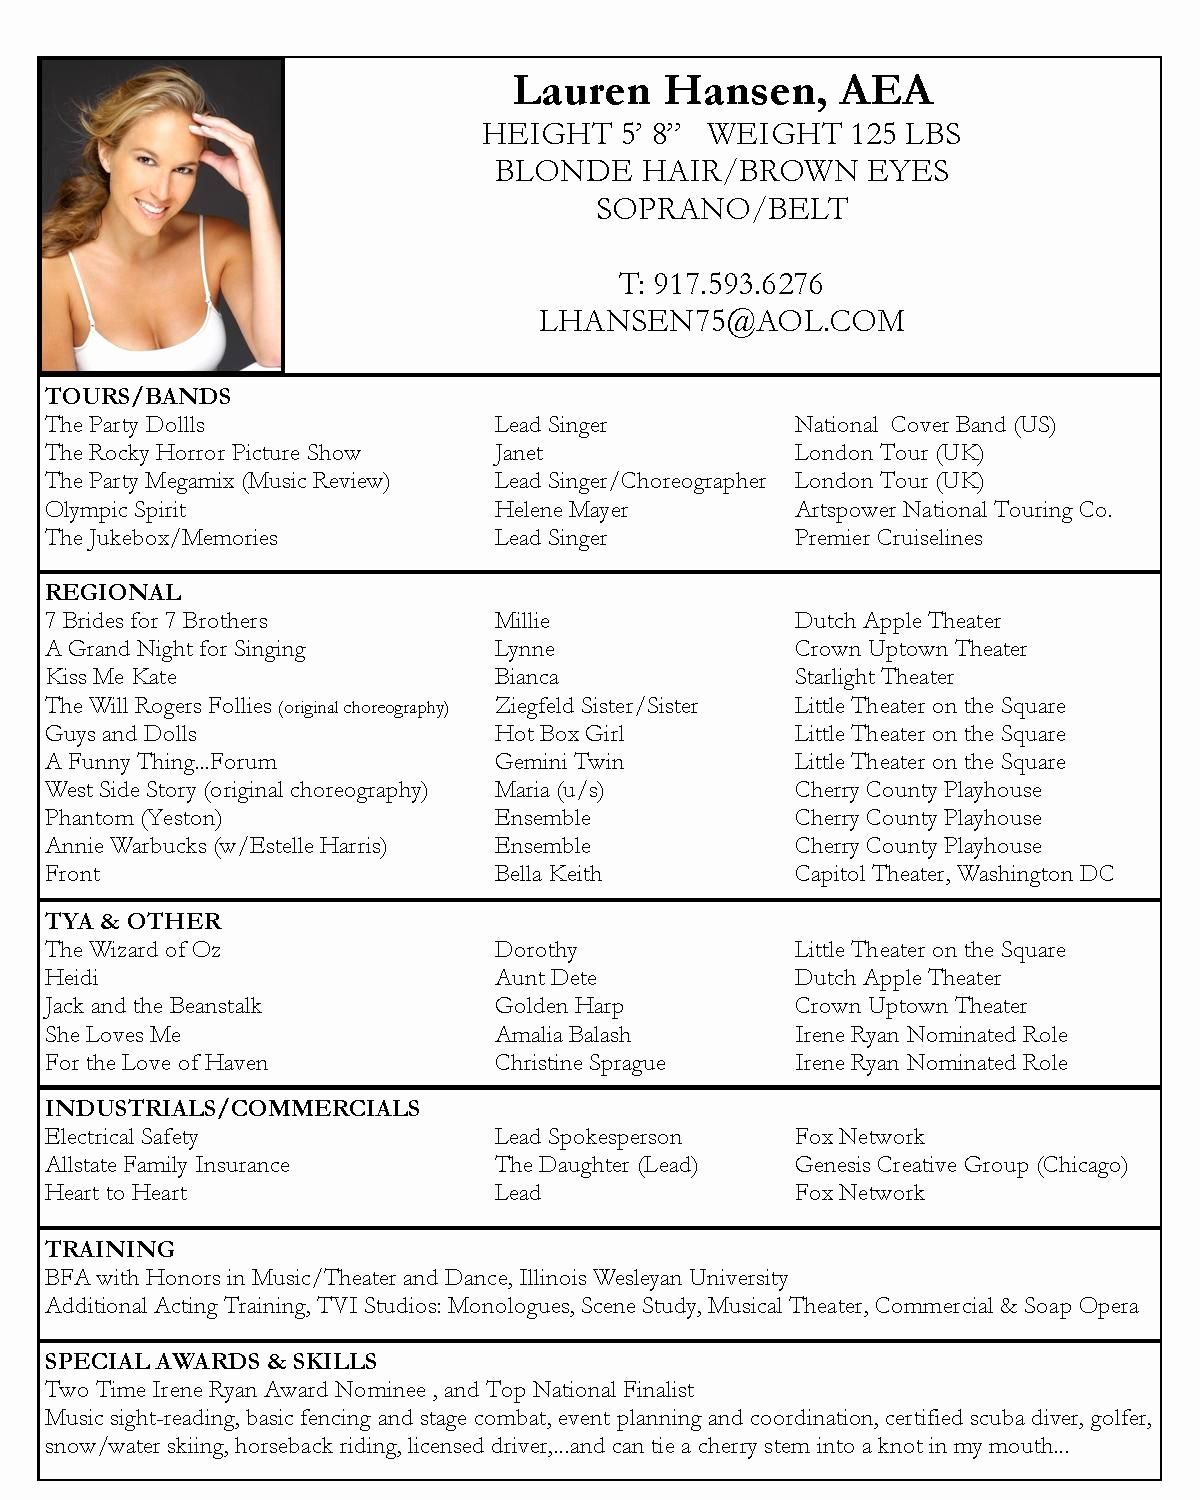 Performing Arts Resume Template Inspirational Pin by Kaarin Pigford On Let S Put On A Show In 2019